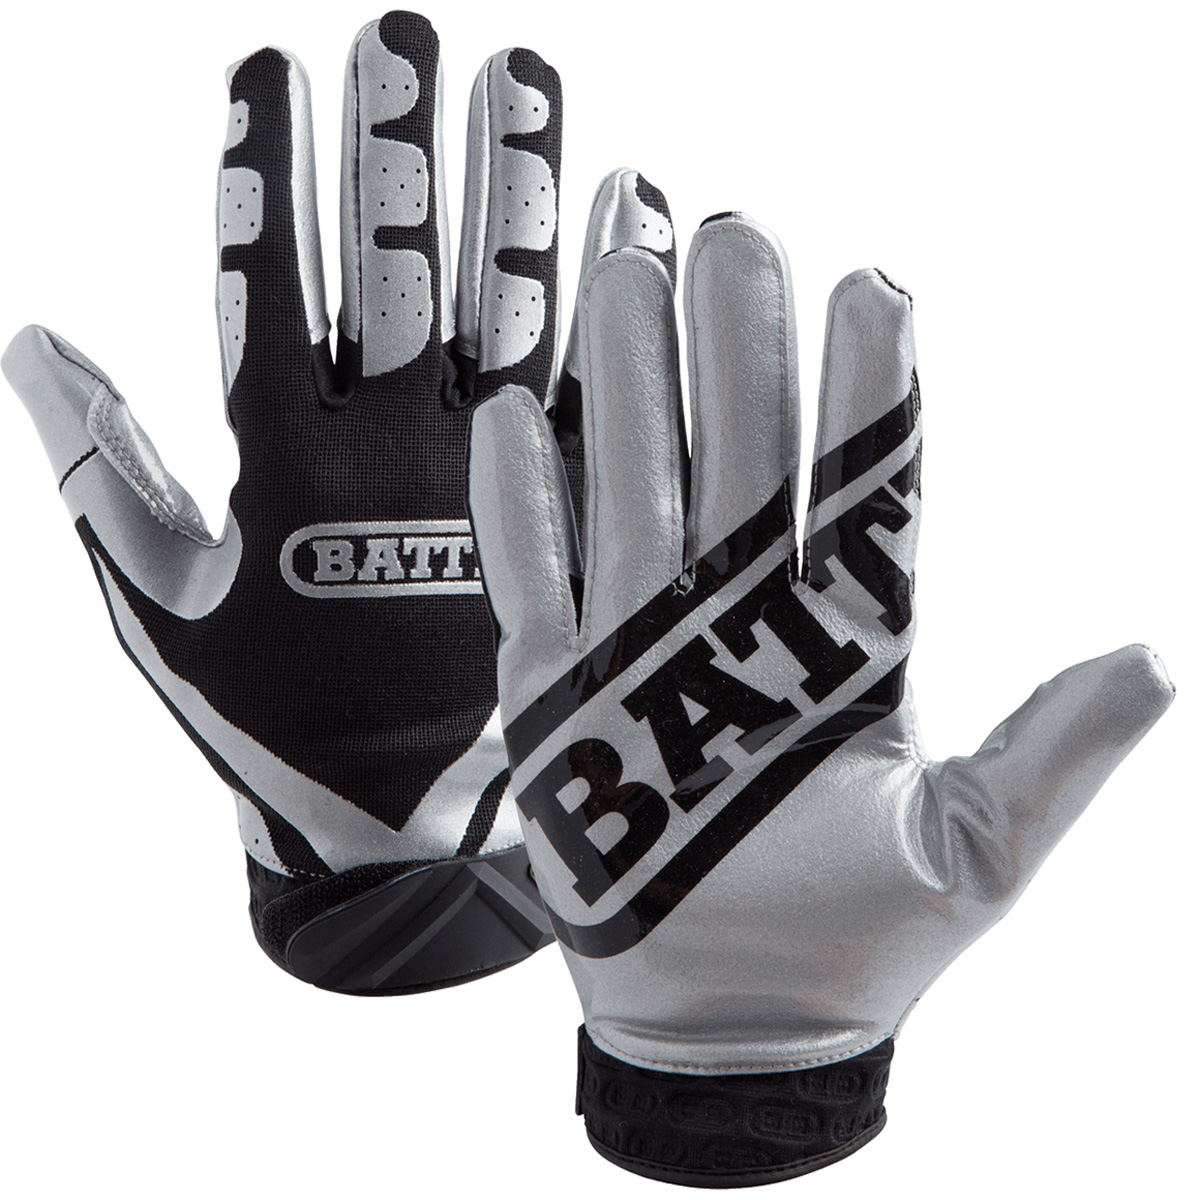 Details about Battle Sports Science Receivers Ultra-Stick Football Gloves -  Silver Black ea2d222a5a52